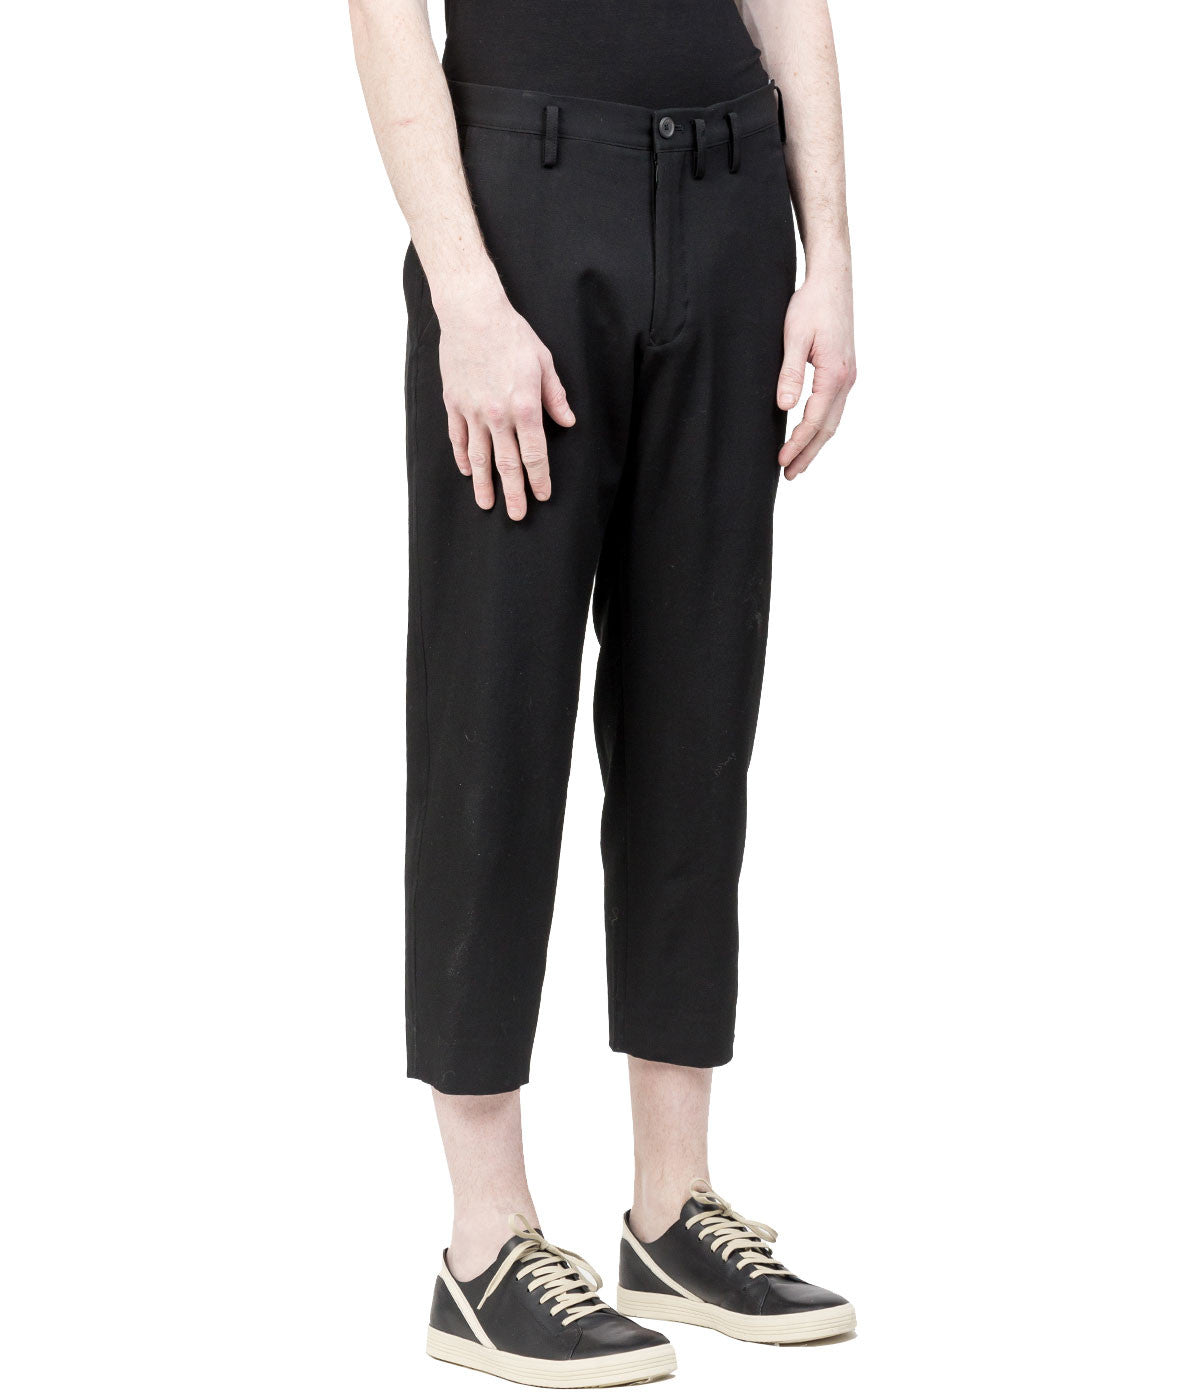 Black N-Slim Pants